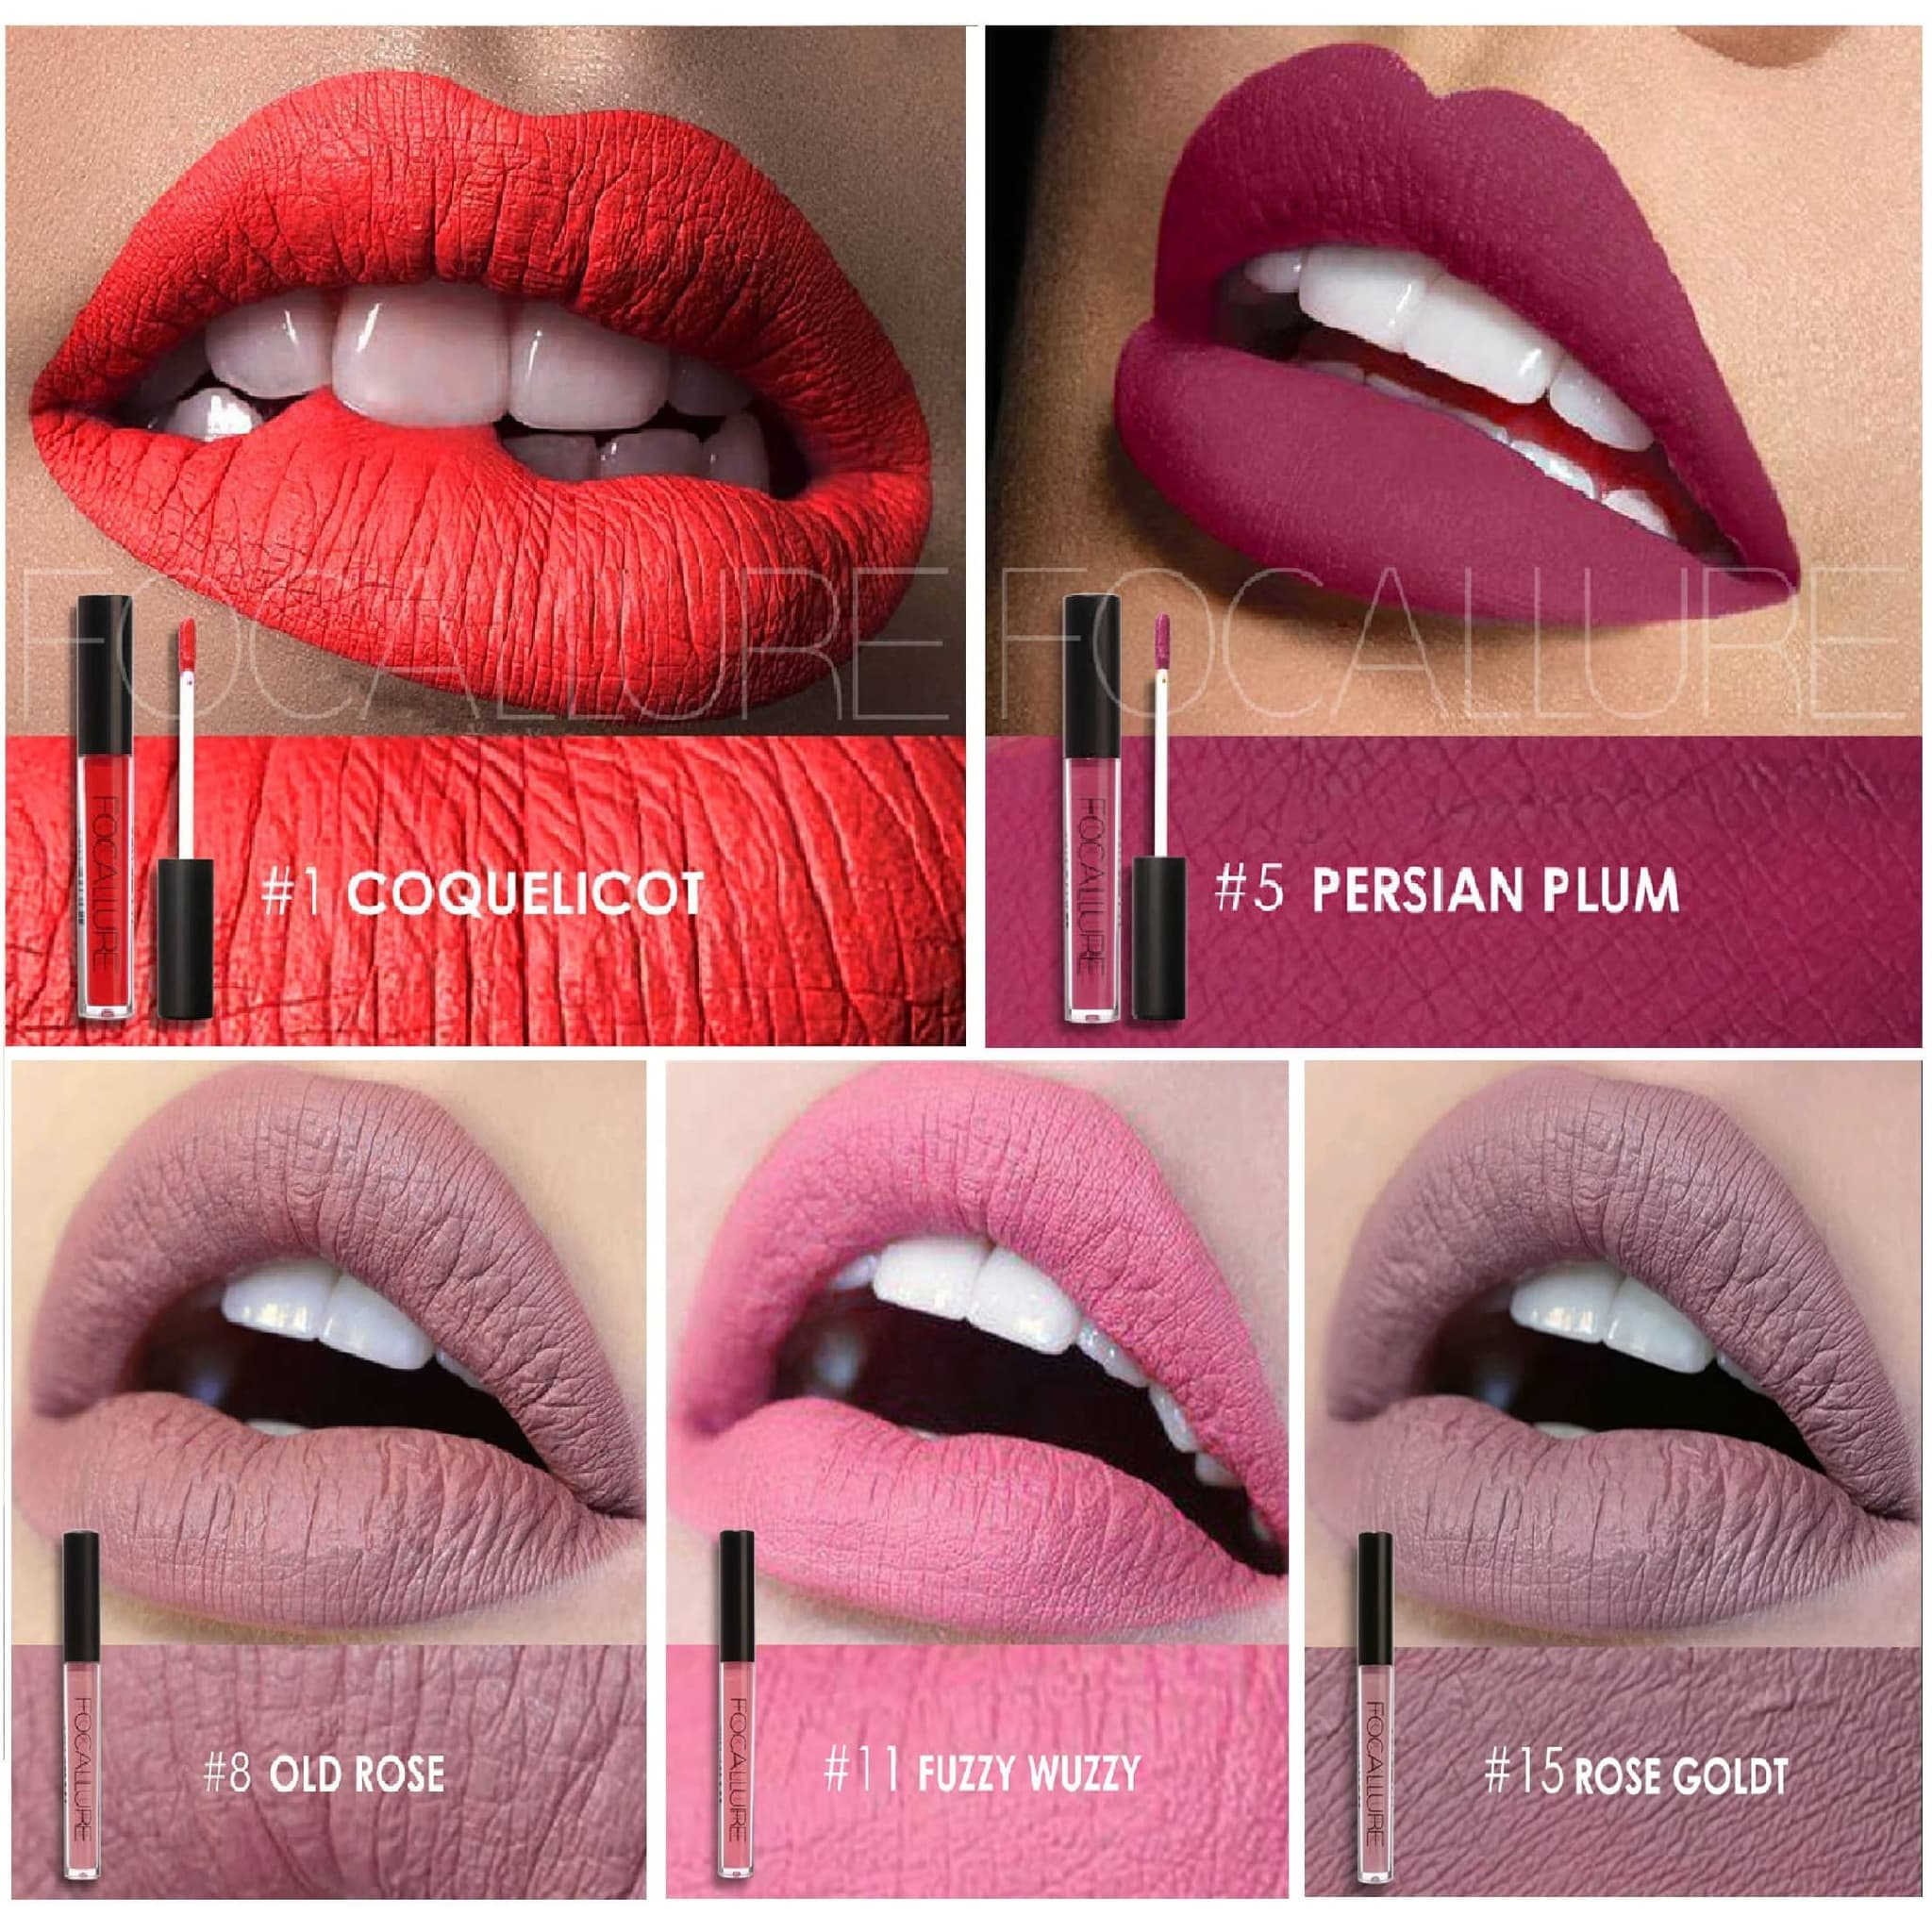 SALE CLEAR STOCK FOCALLURE LIPSTICK CAIR WATERPROOF - 01 COQUELICOT thumbnail